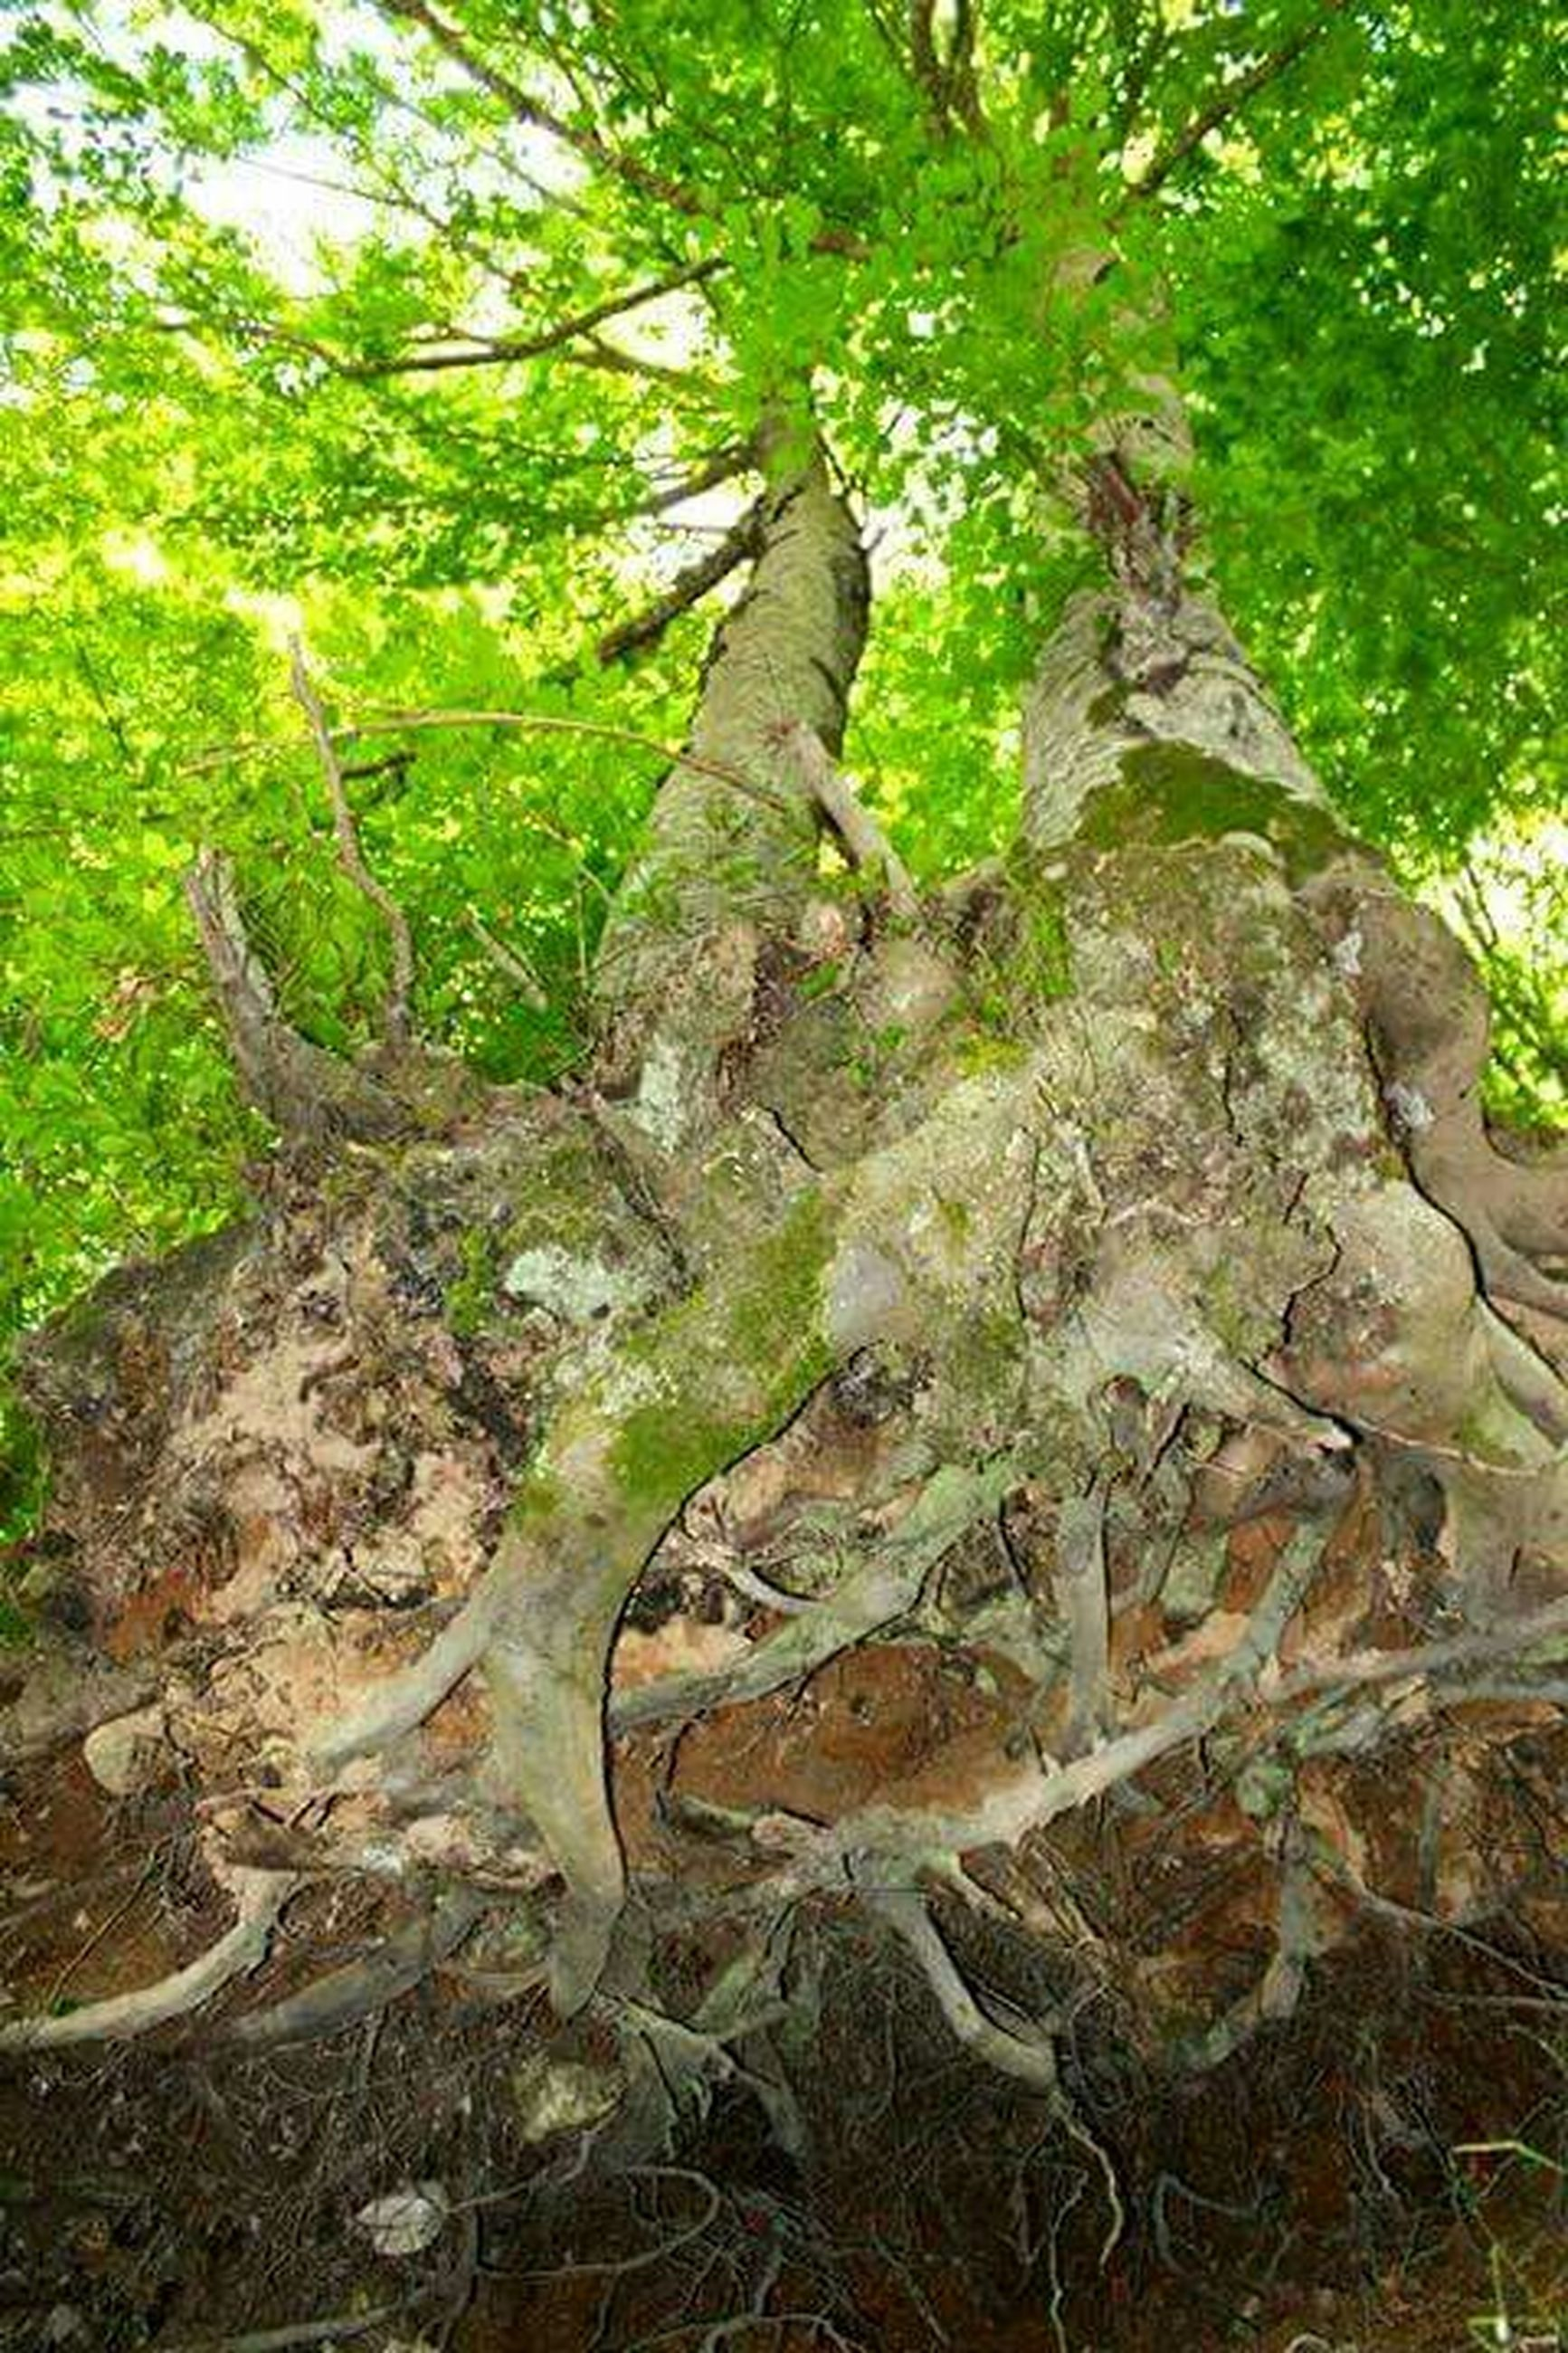 tree, forest, tree trunk, growth, branch, nature, tranquility, leaf, root, day, green color, outdoors, plant, no people, beauty in nature, woodland, moss, low angle view, textured, tranquil scene